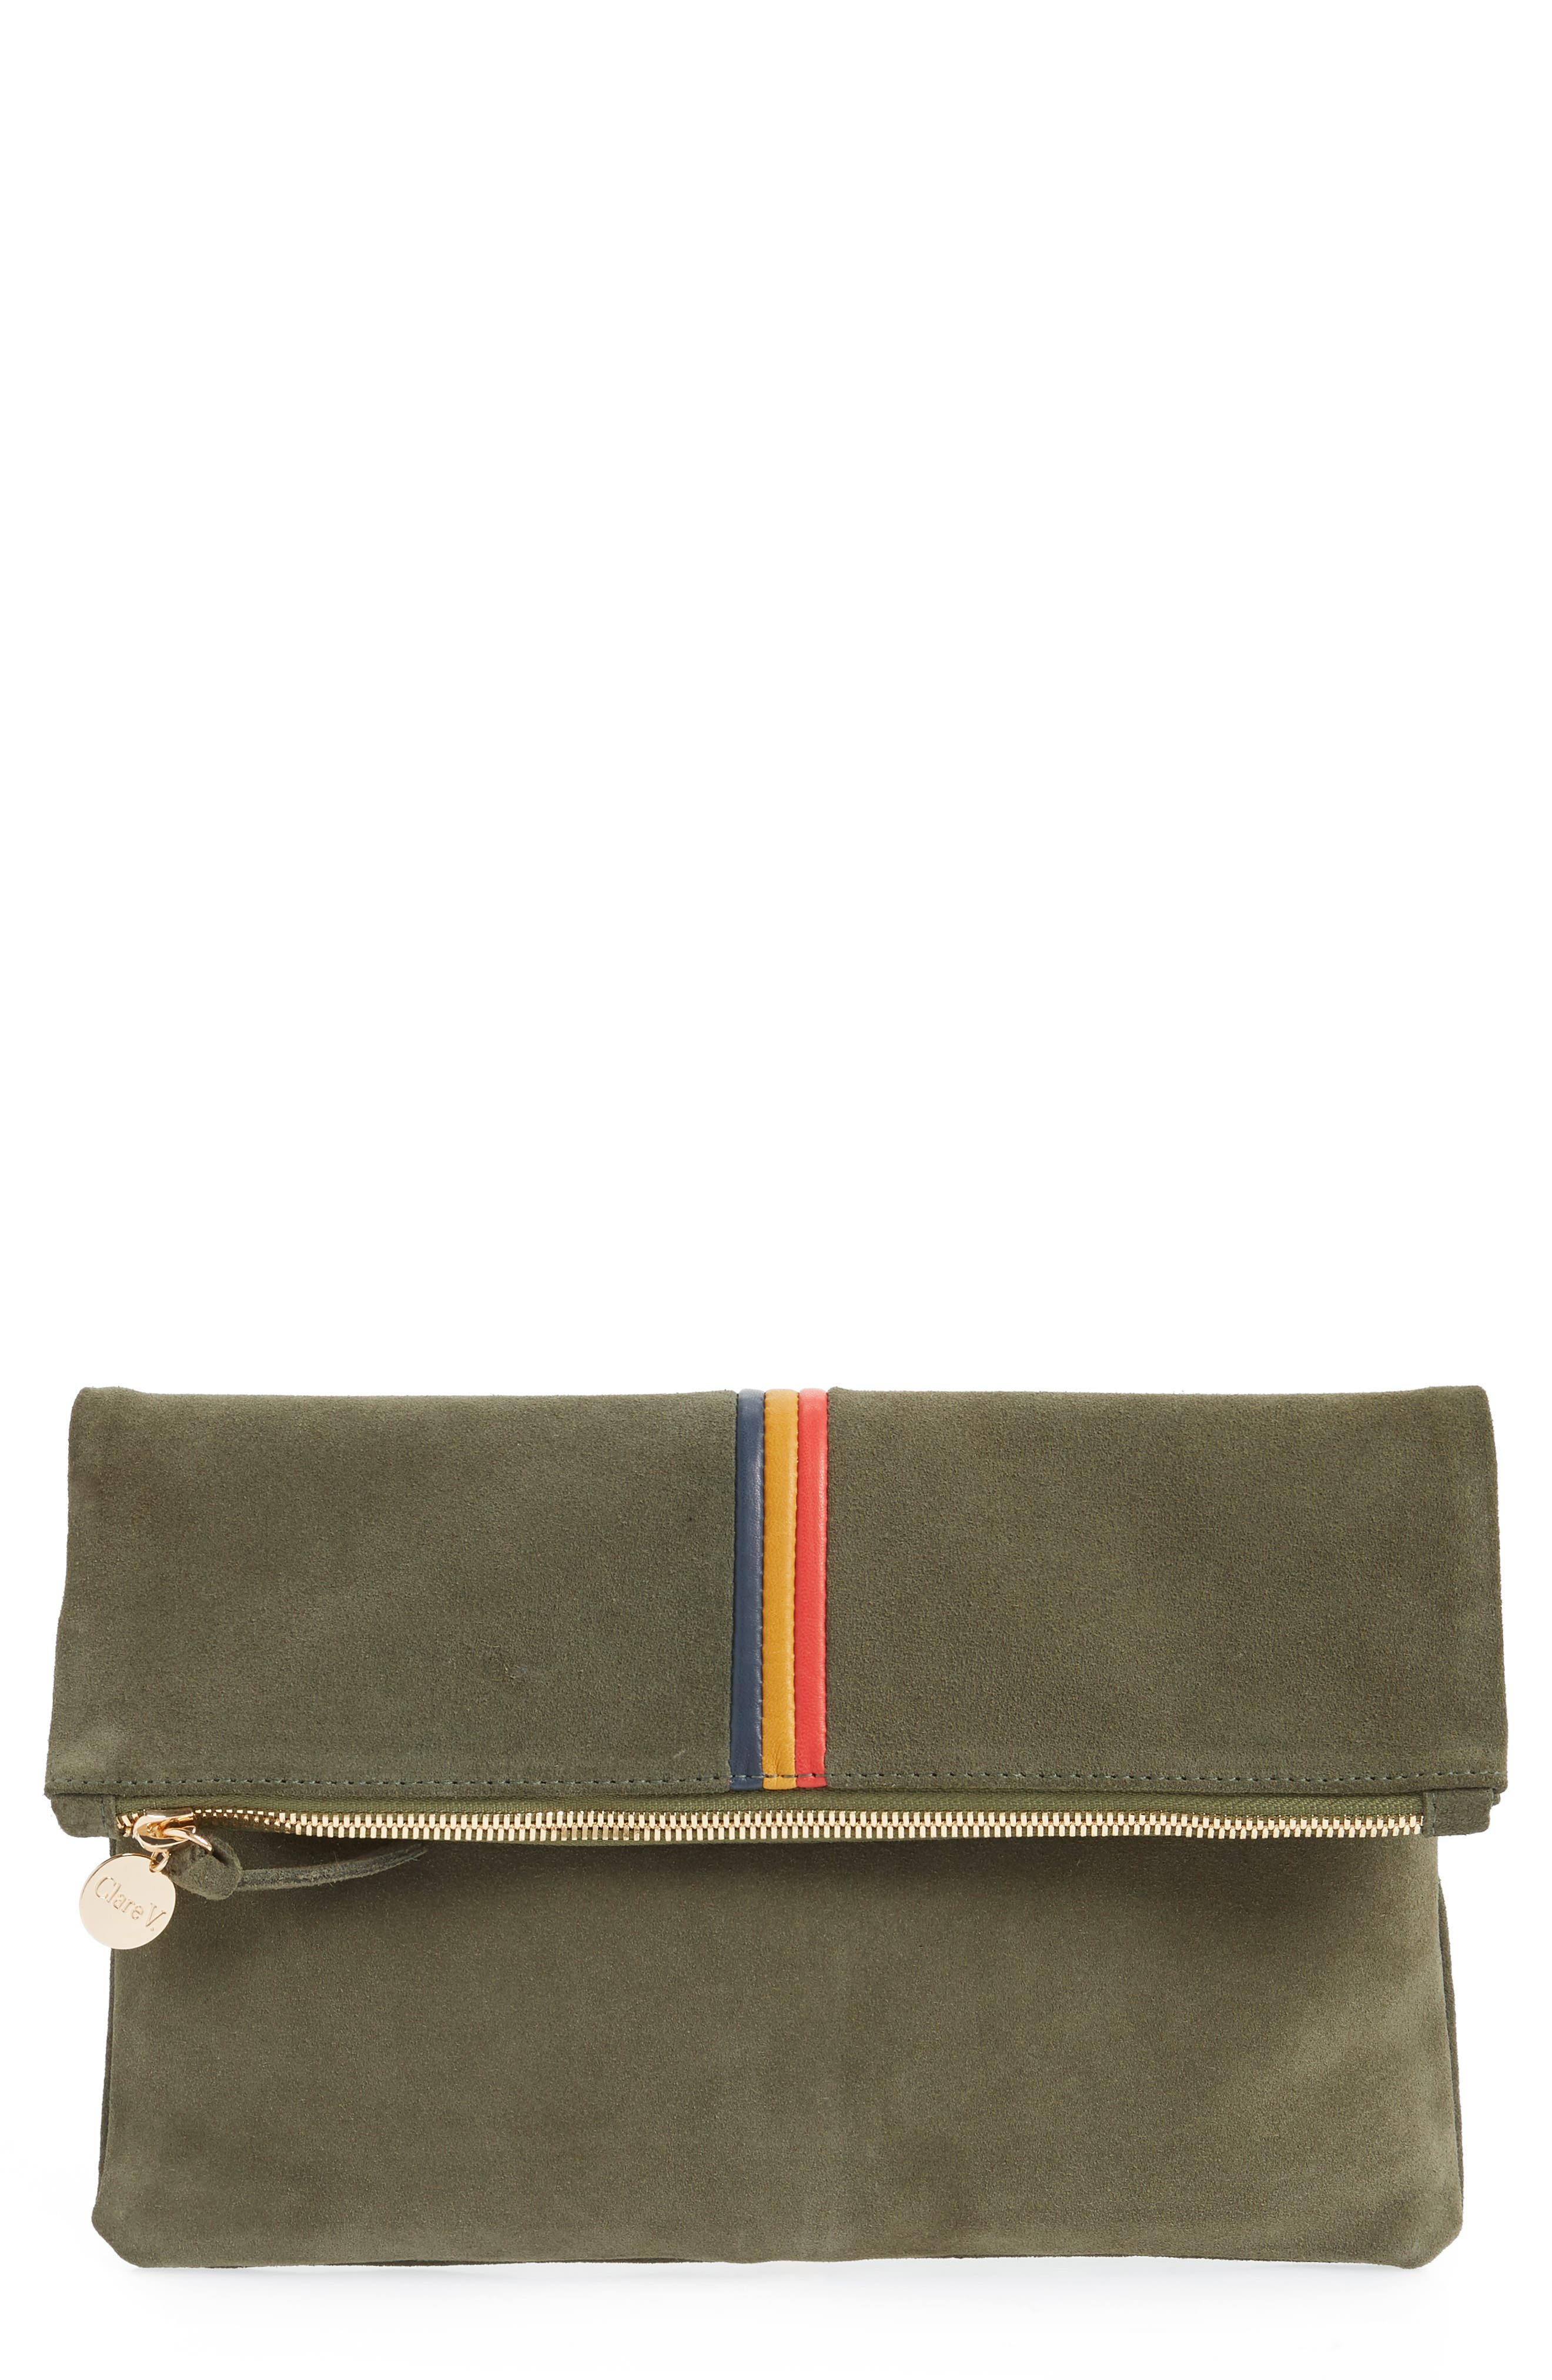 Center Stripe Nubuck Foldover Clutch,                             Main thumbnail 1, color,                             ARMY SUEDE STRIPE